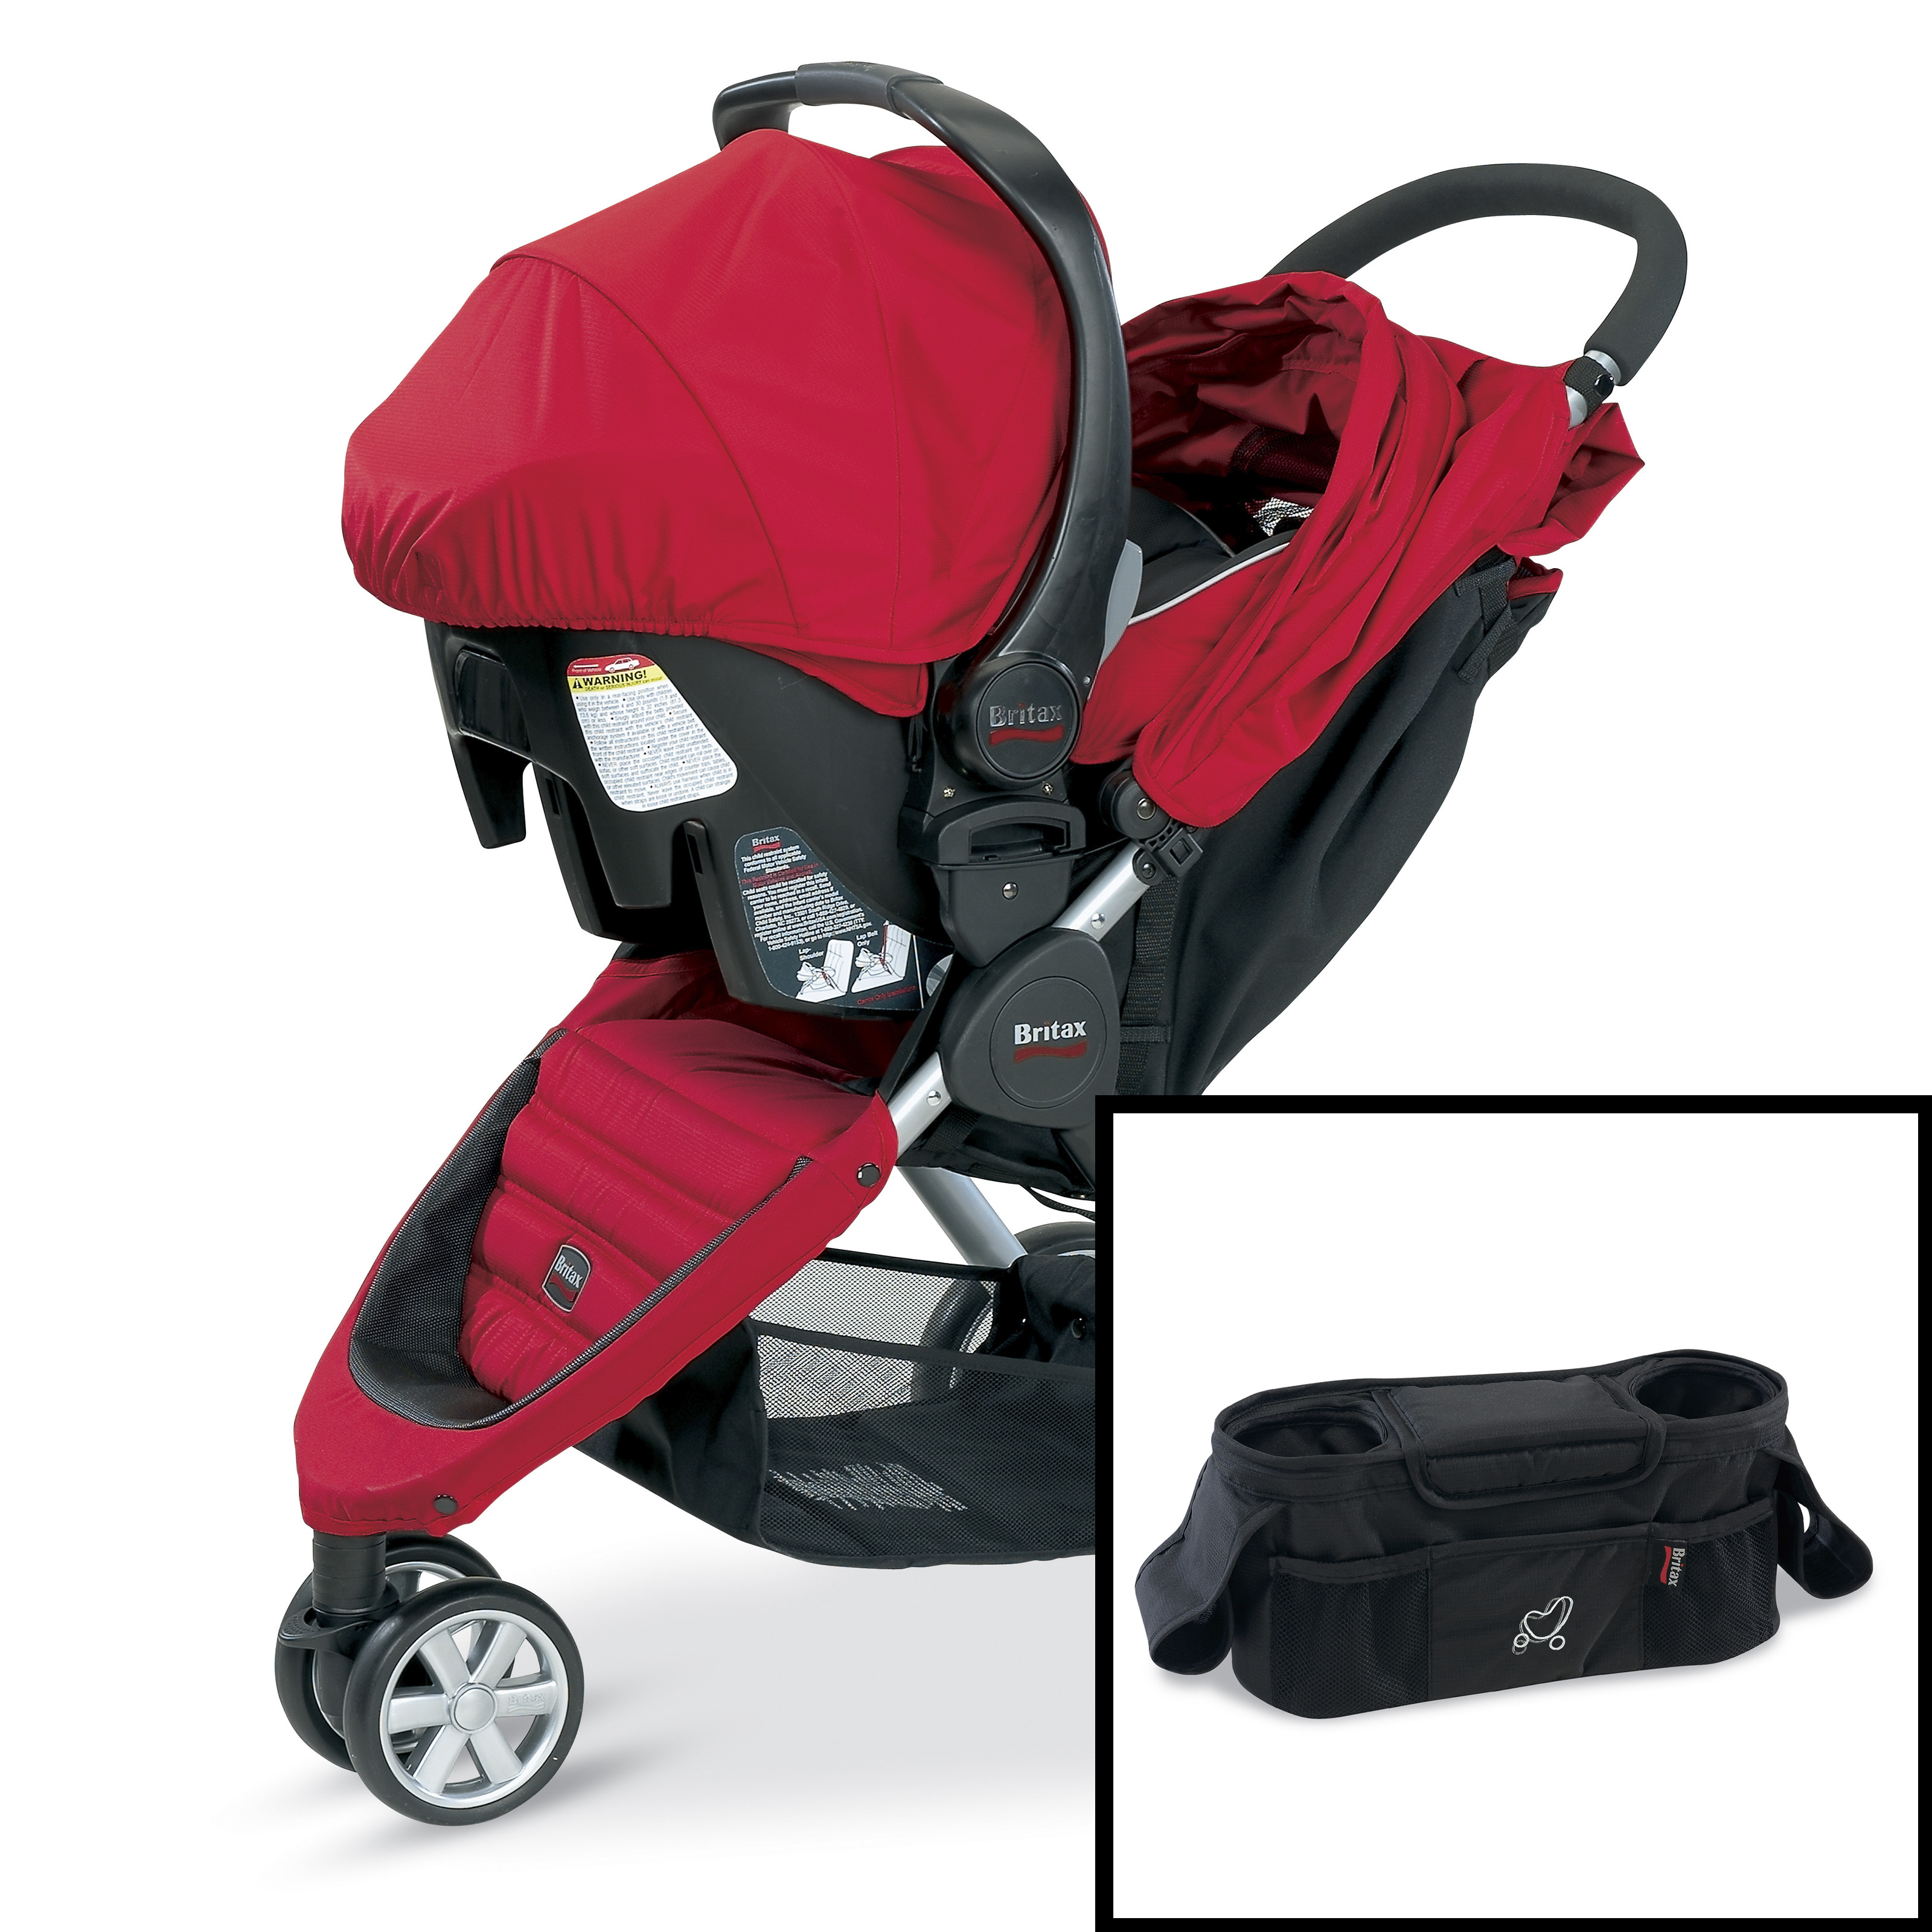 britax b agile red travel system with free stroller organizer at hayneedle. Black Bedroom Furniture Sets. Home Design Ideas